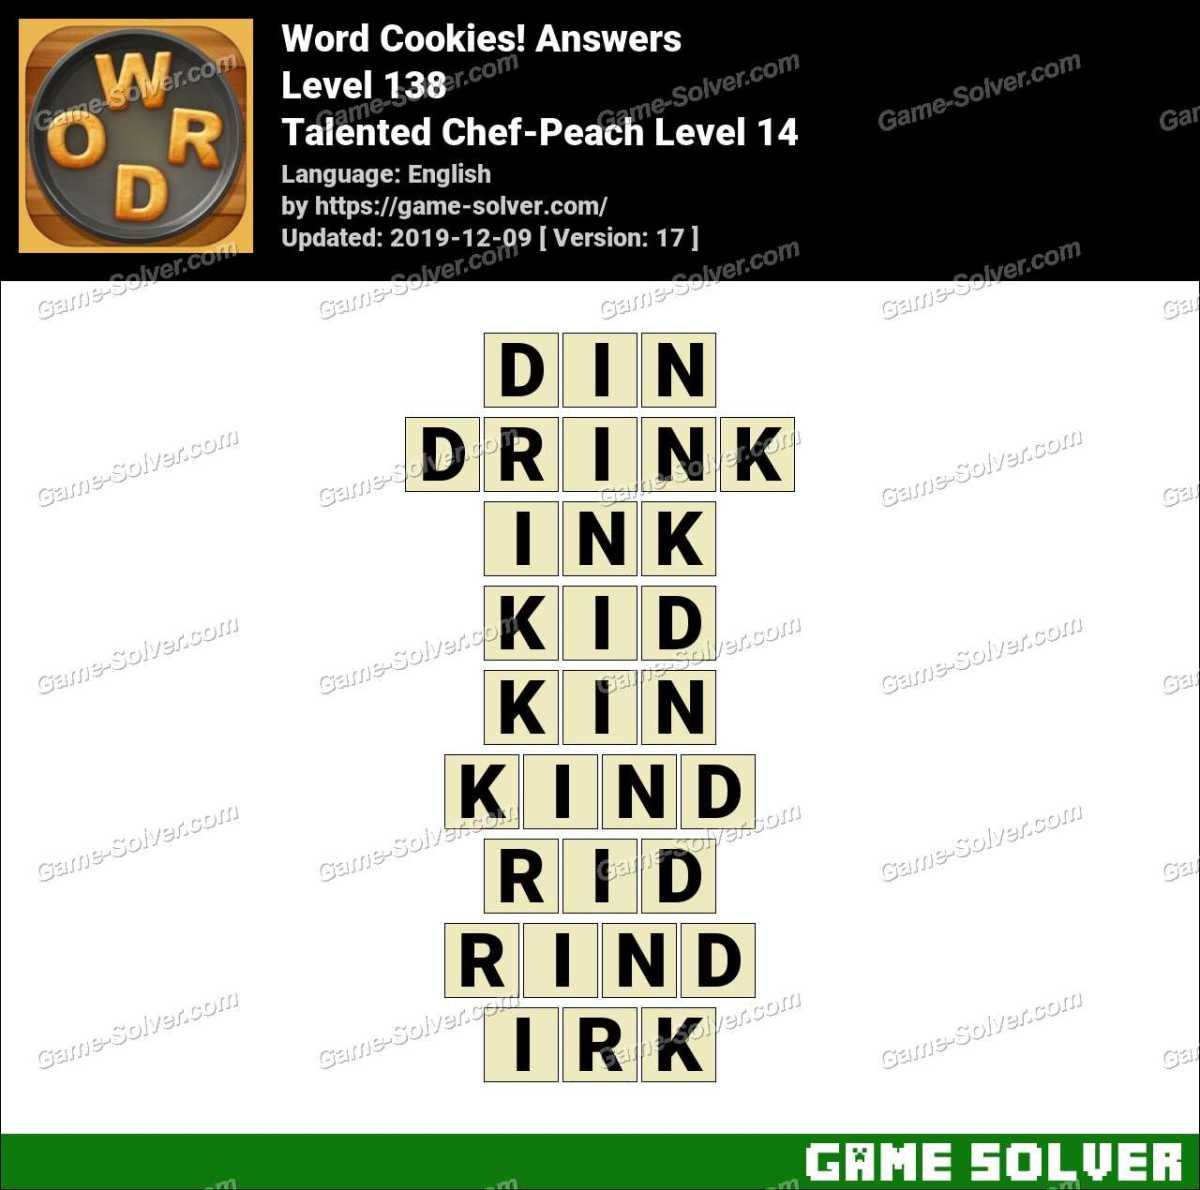 Word Cookies Talented Chef-Peach Level 14 Answers